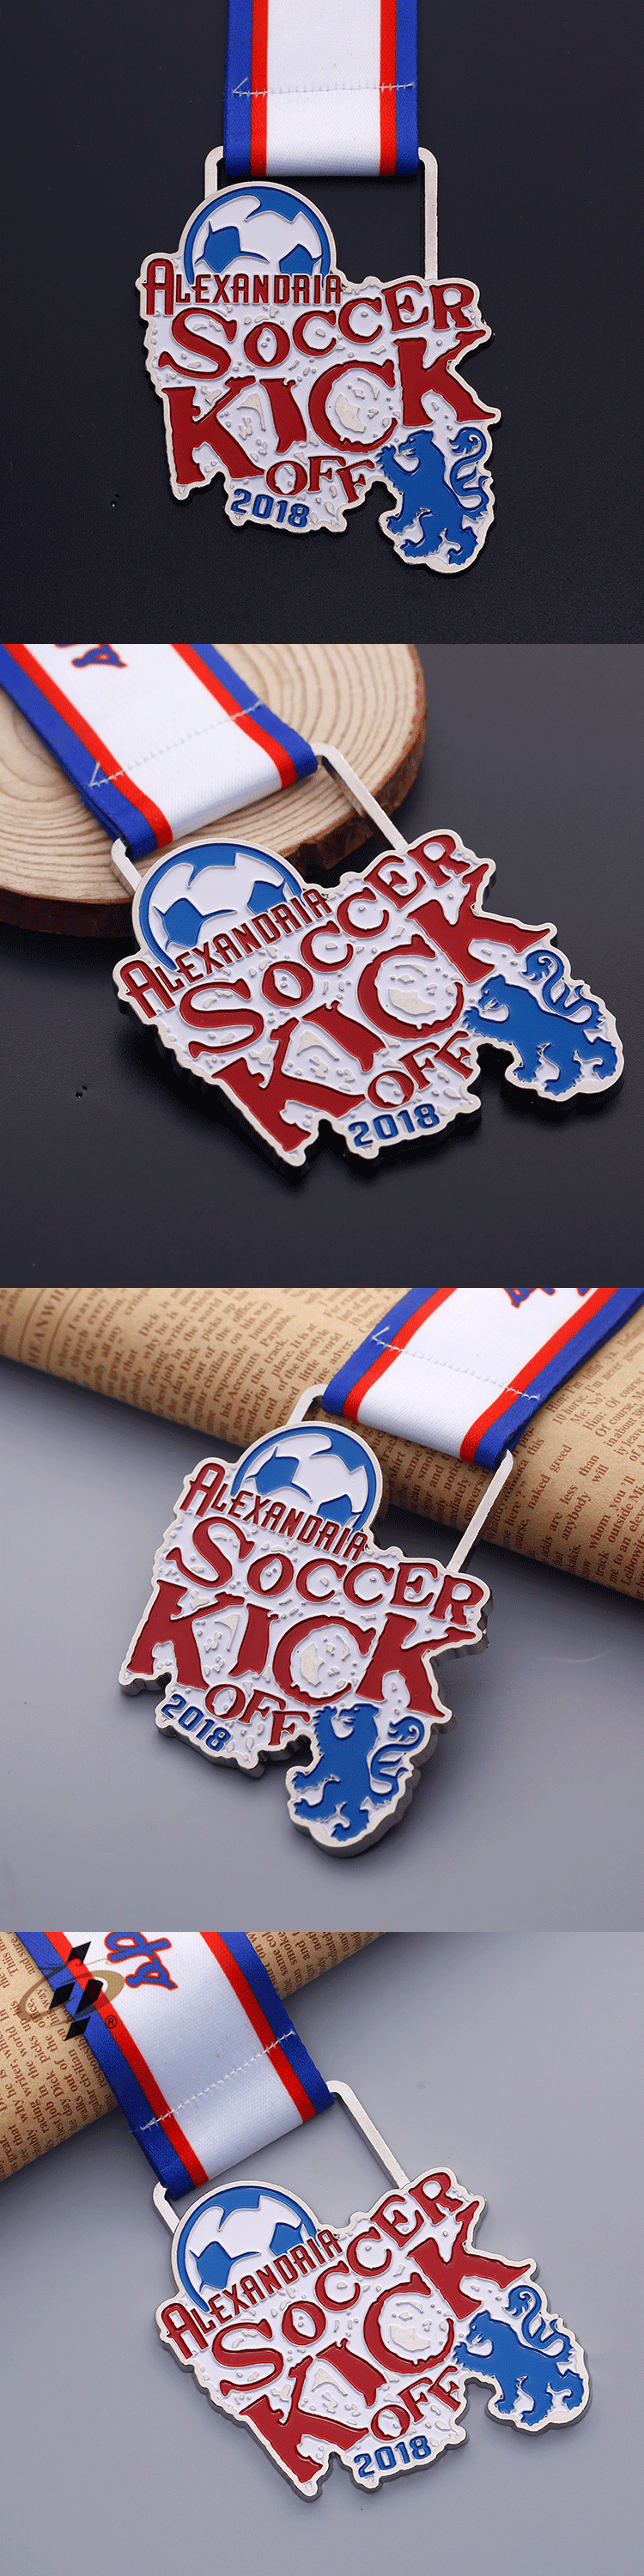 Custom die stuck metal silver enamel soccer award medals with lanyard